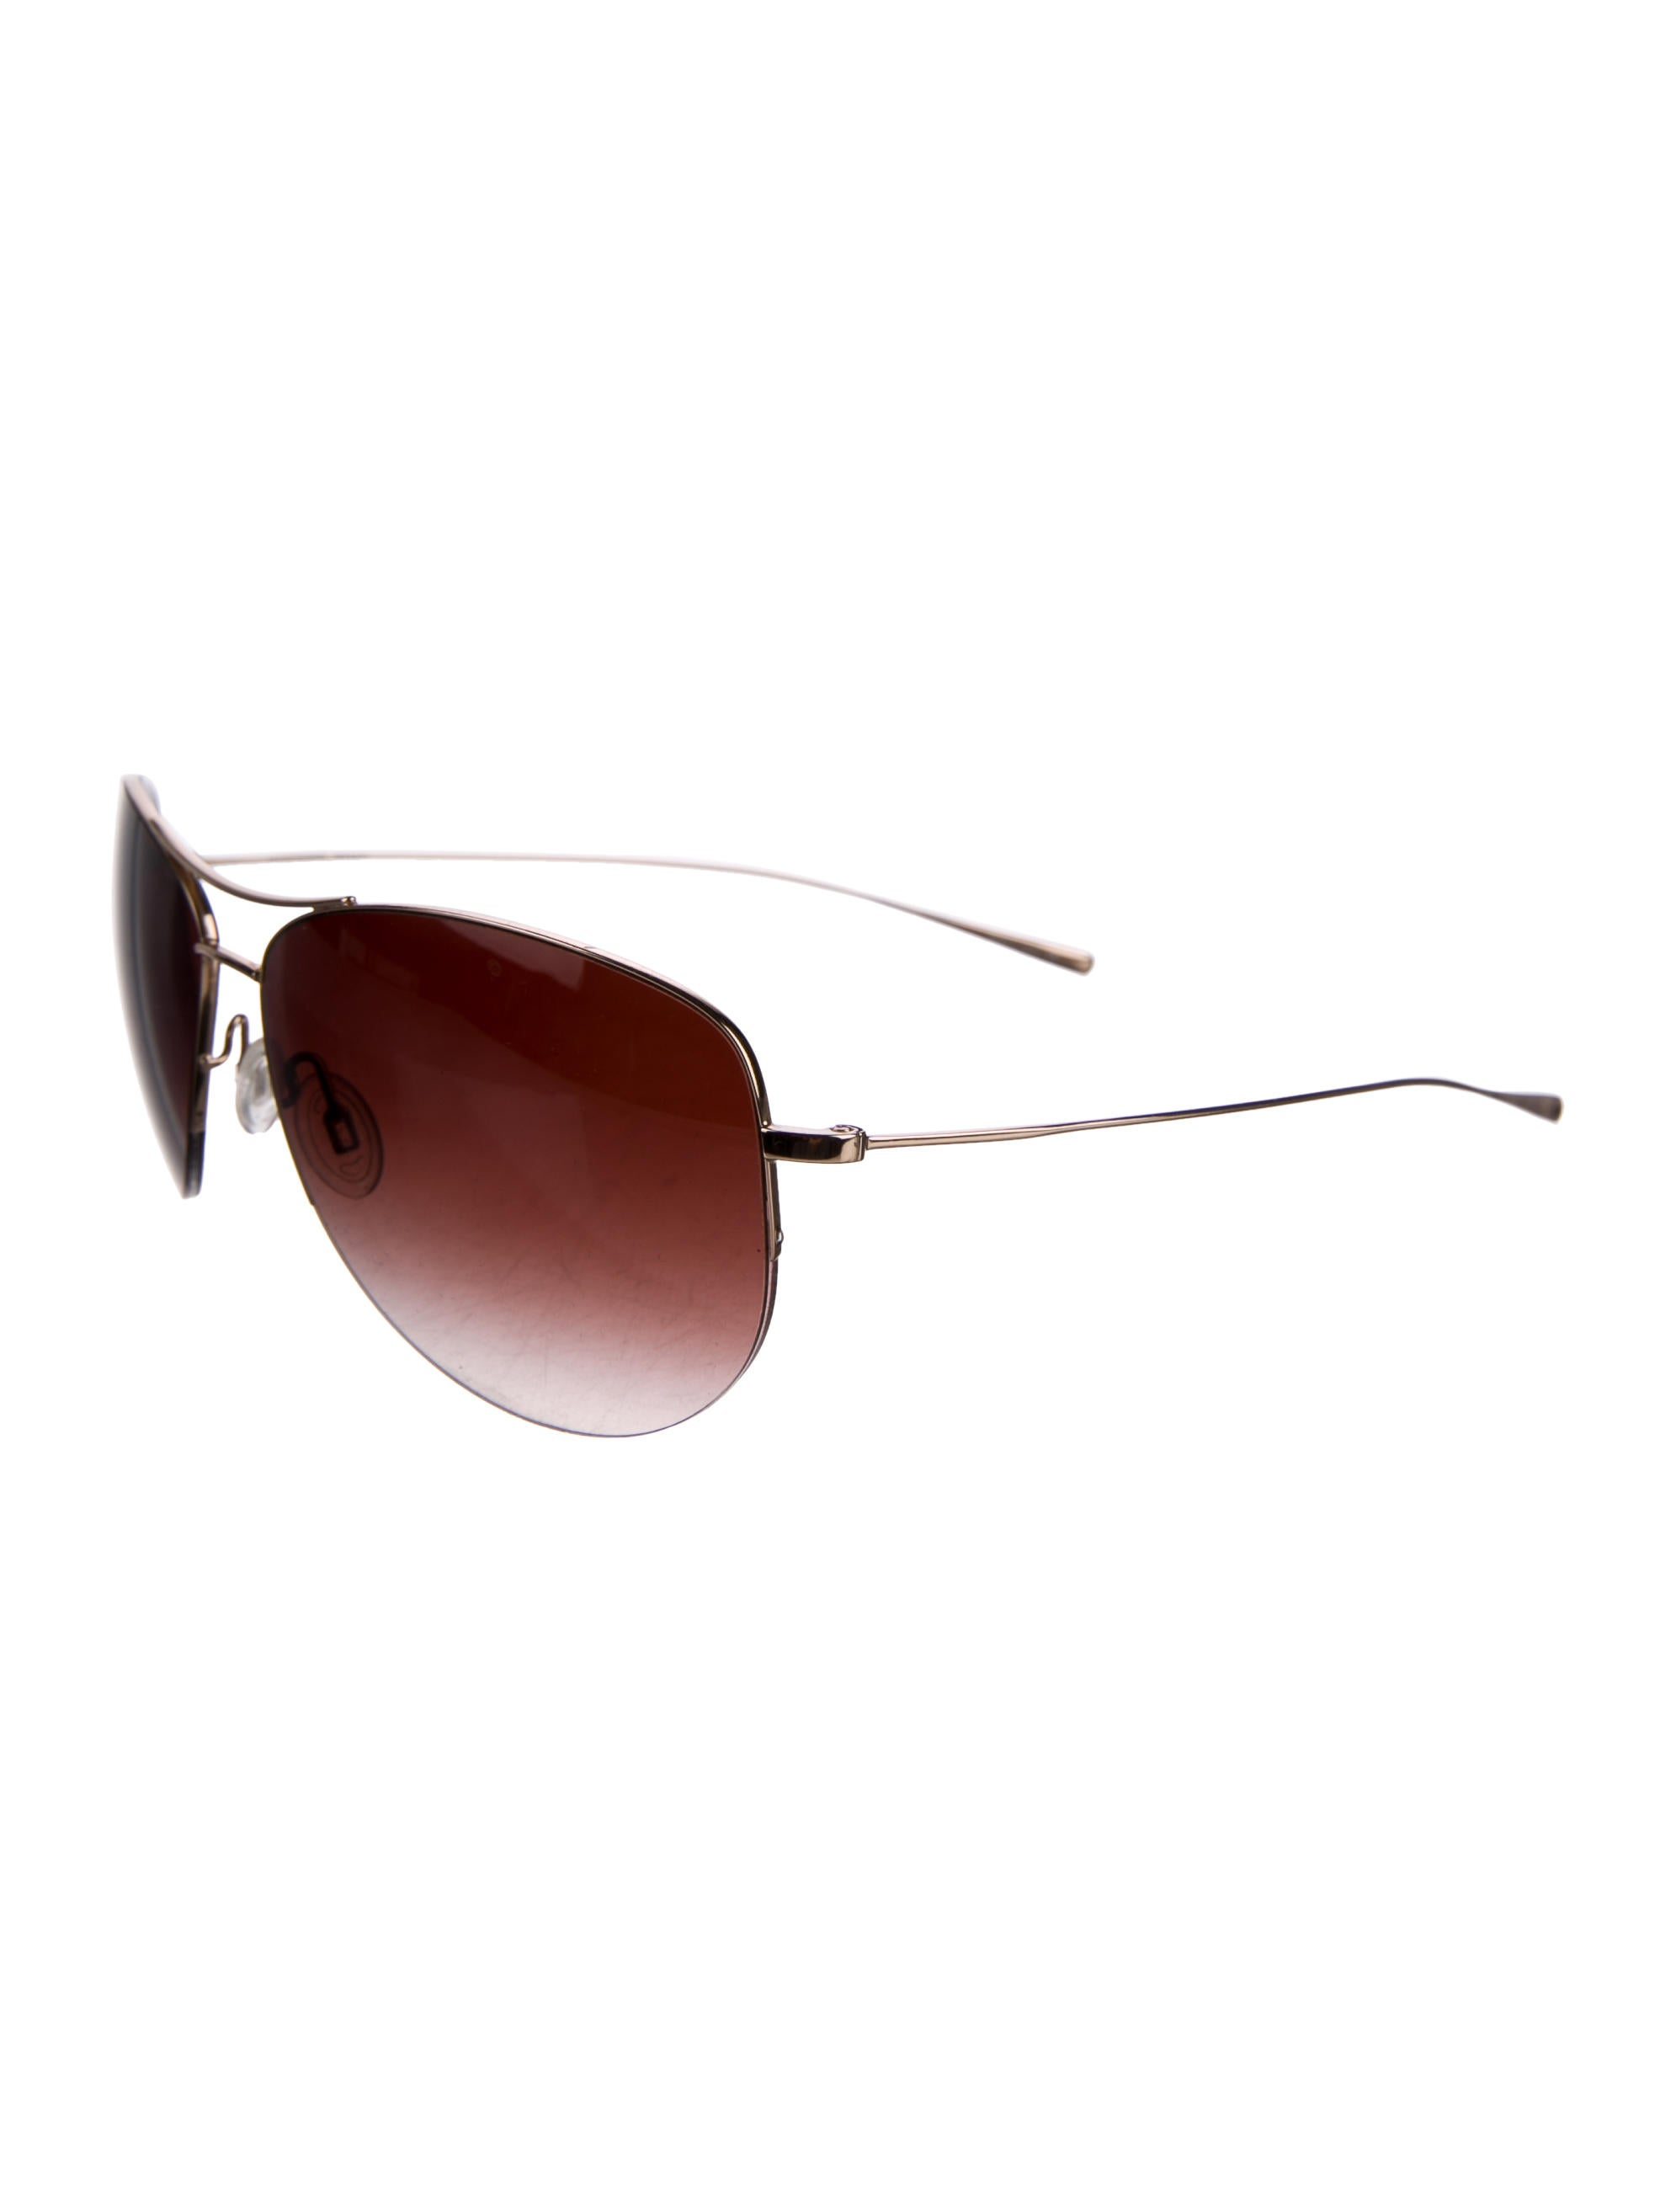 5216594d94 Oliver Peoples Strummer Aviator Sunglasses - Accessories - WOP24297 ...